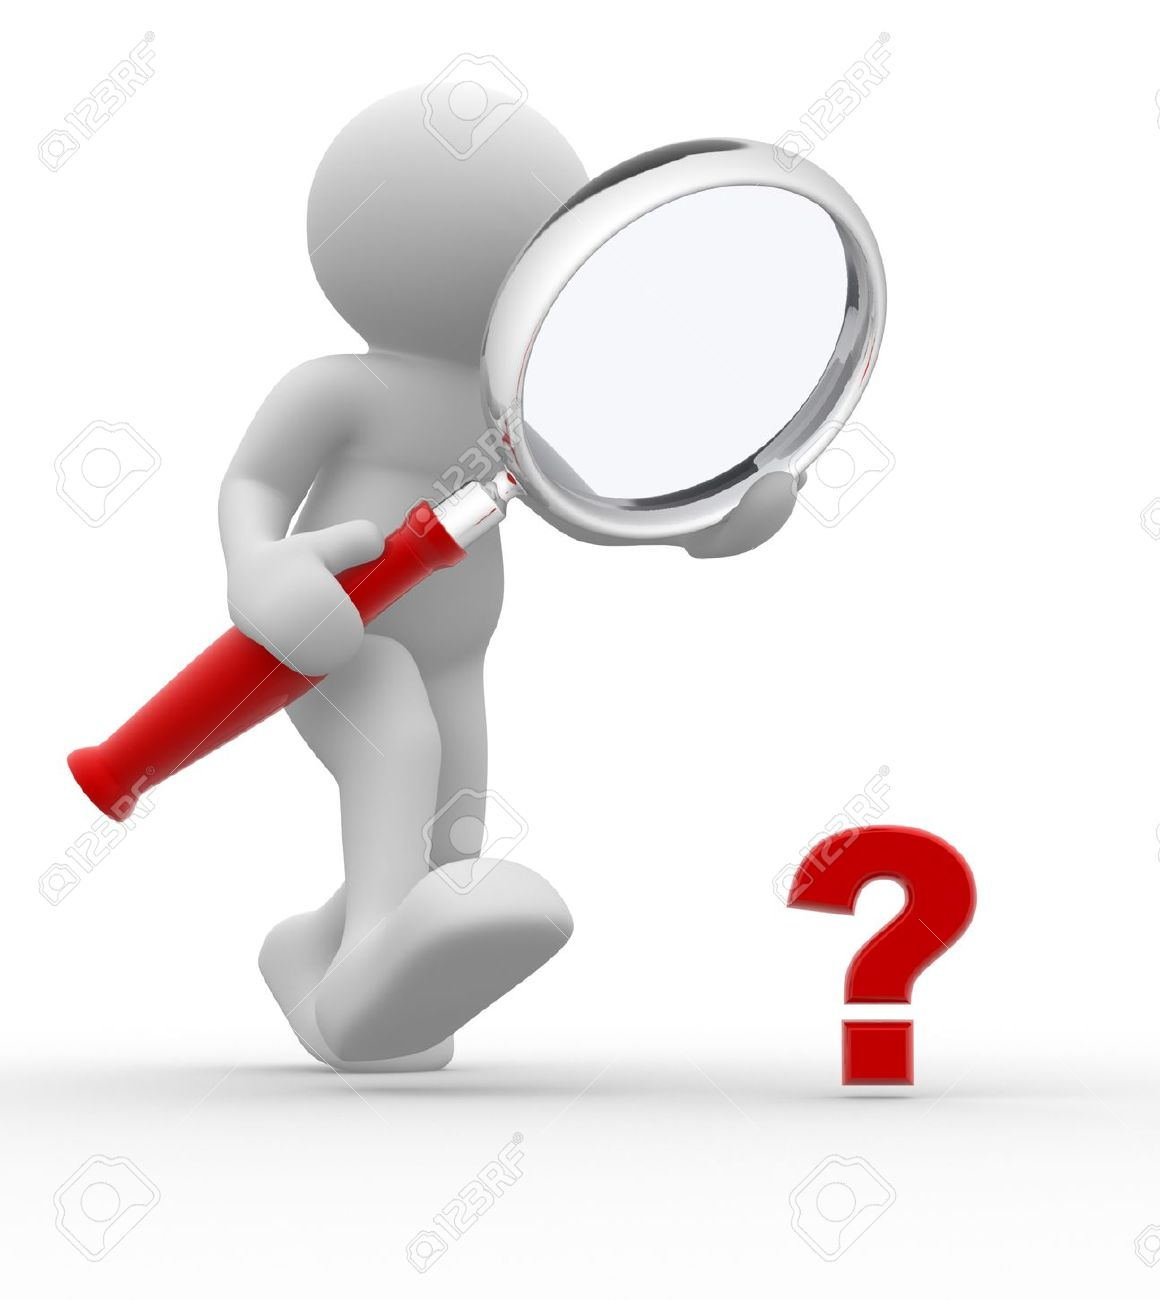 3d person with magnifying glass and question mark stock images image - 3d People Man Person With Magnifying Glass Question Mark Red Search Stock Photo